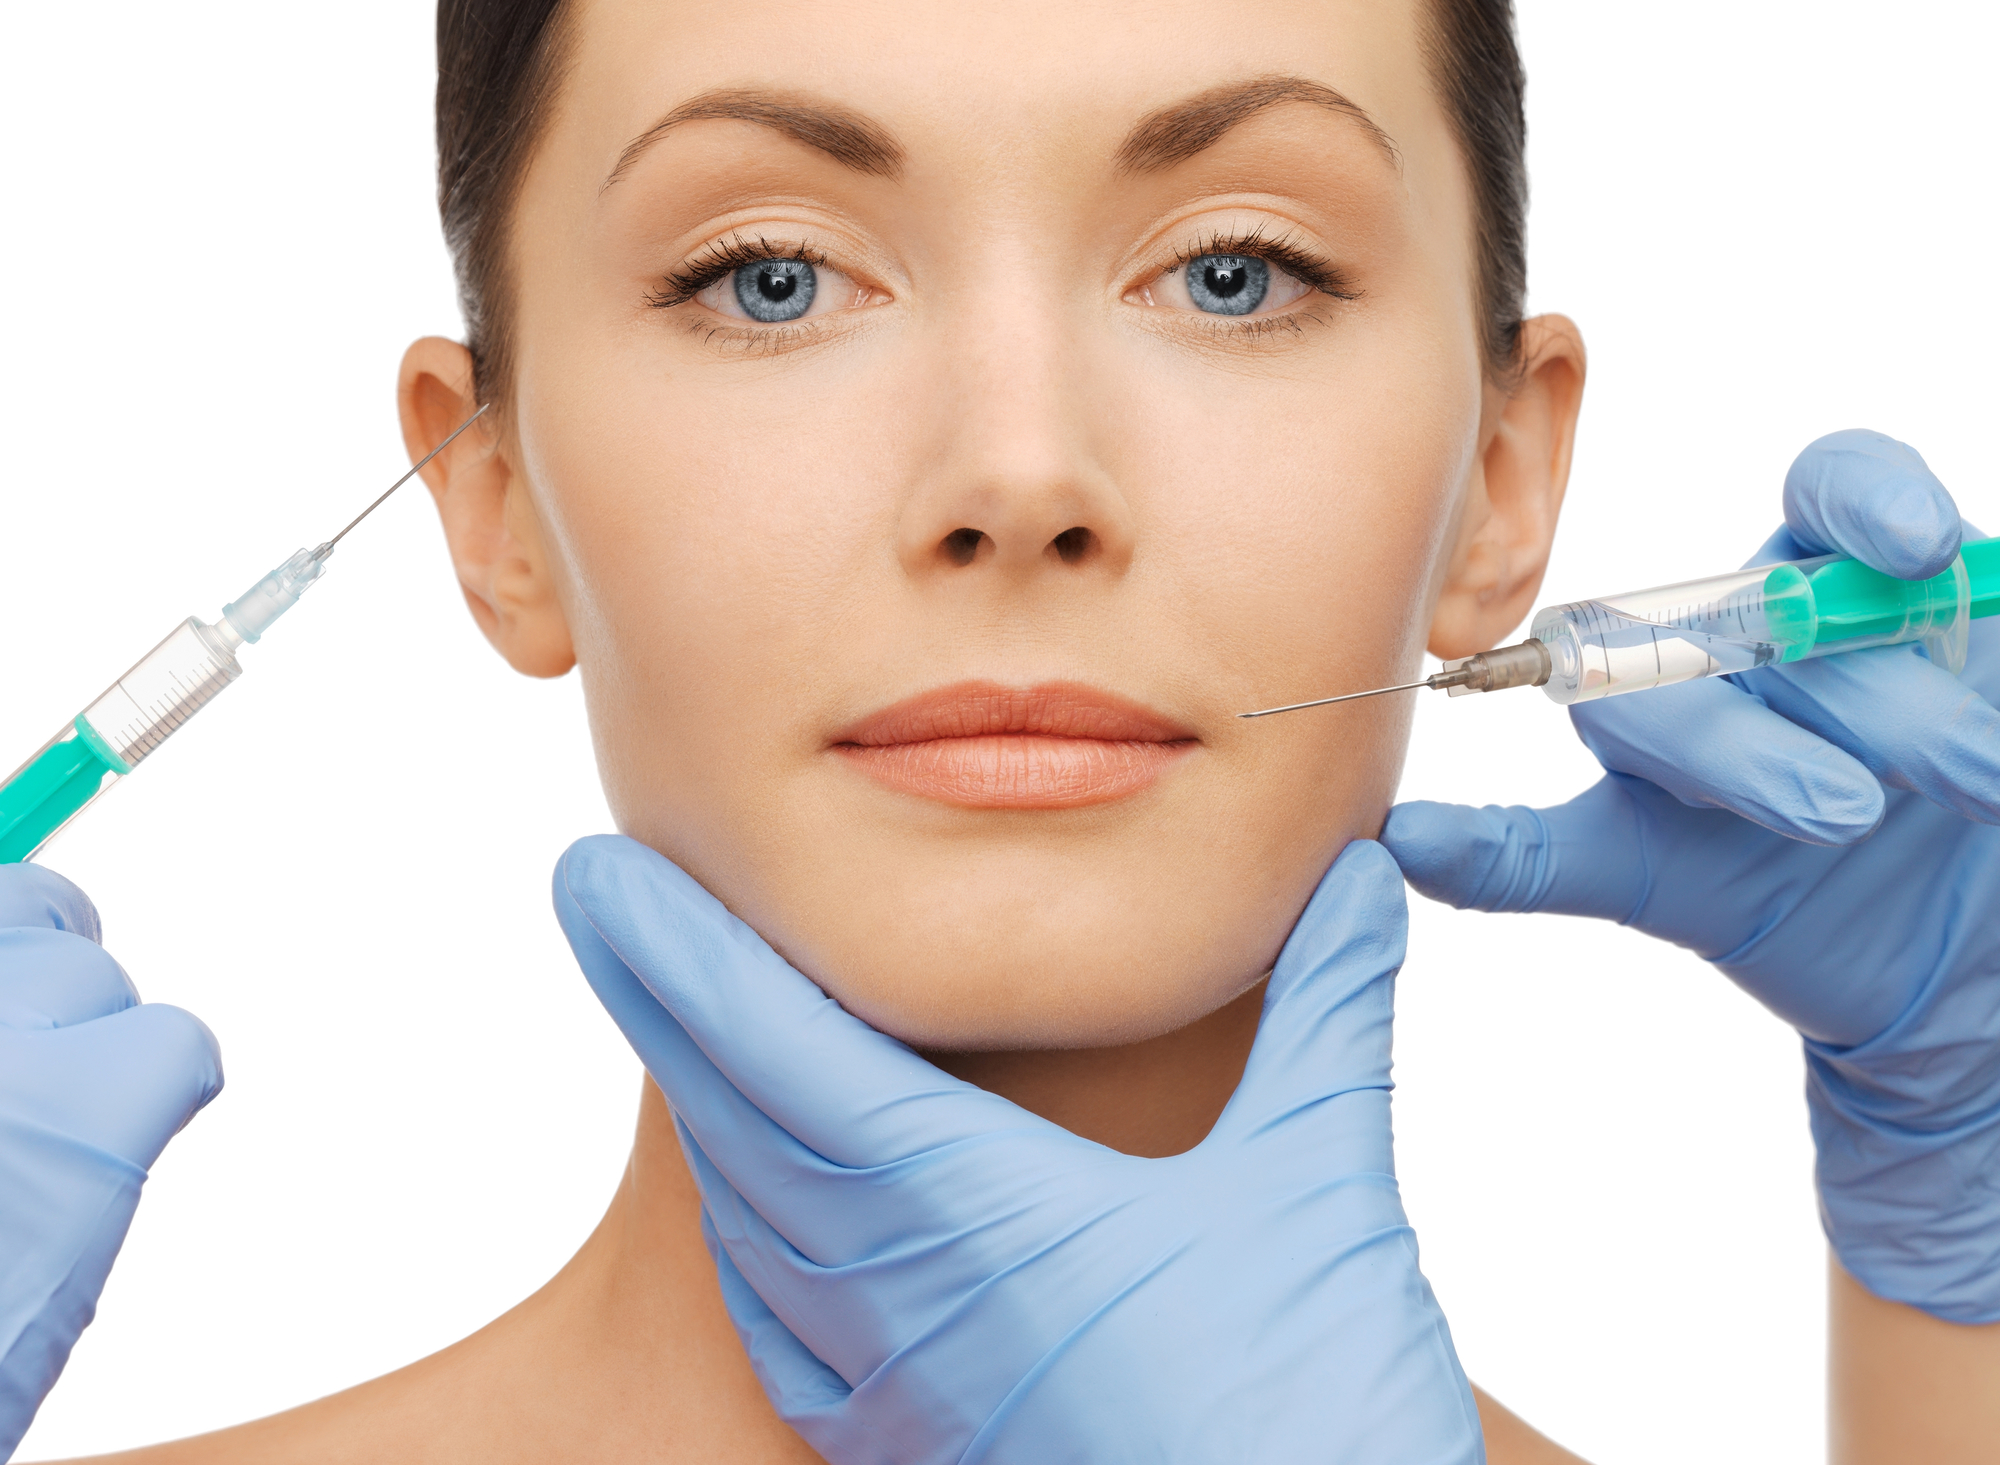 Where can I get dermal fillers in Orlando?